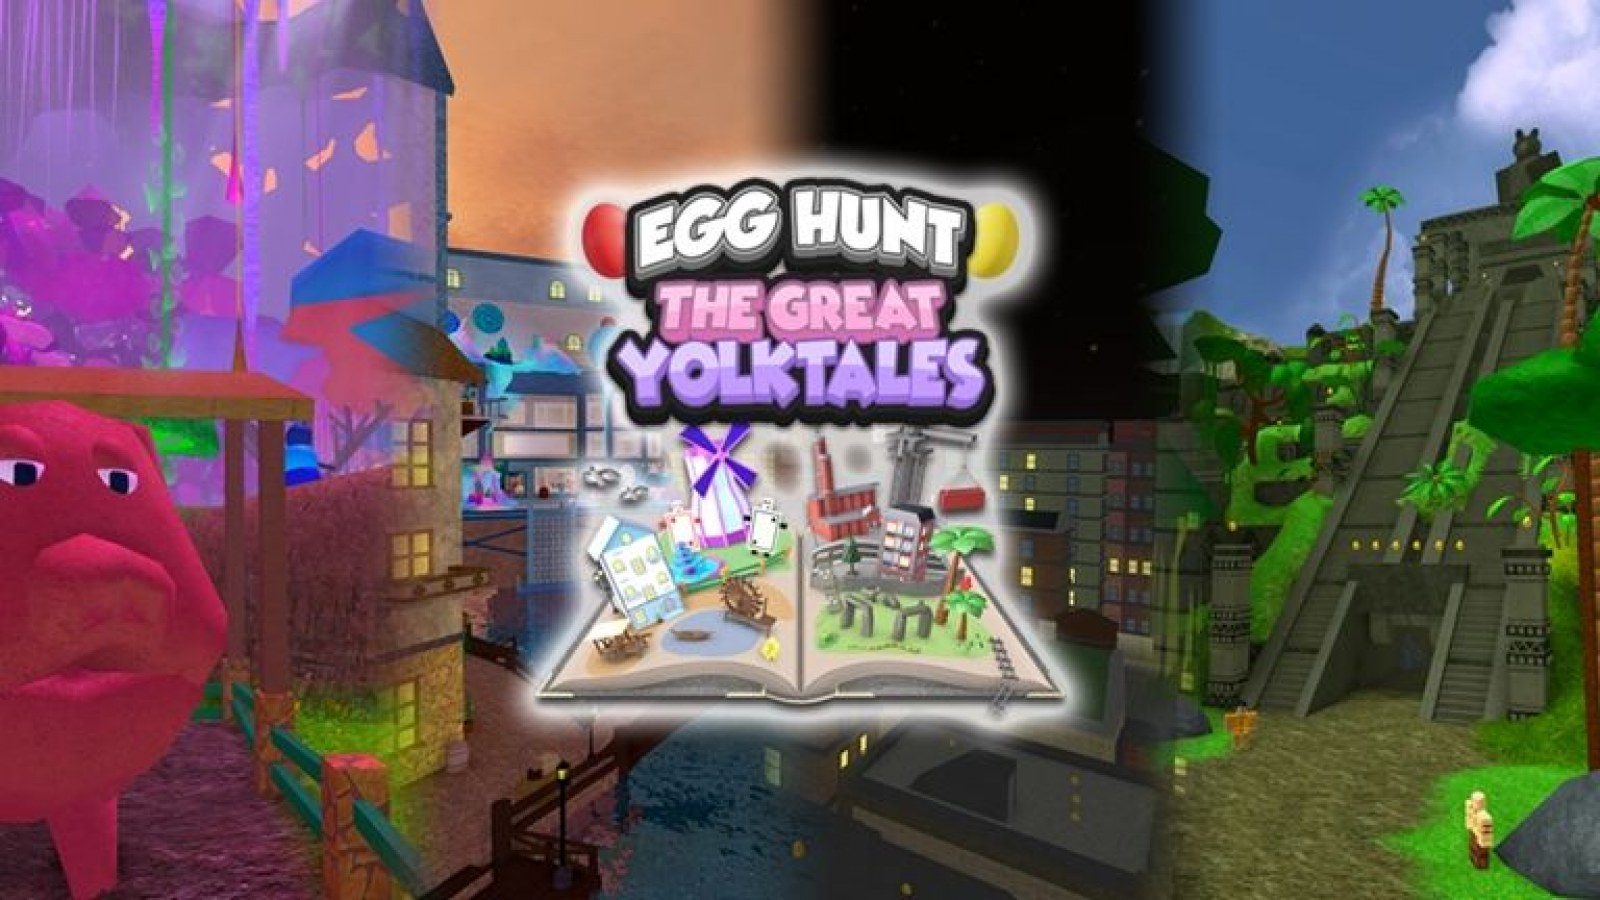 Roblox' Egg Hunt 2018: All Eggs, Hats, Badges And Other